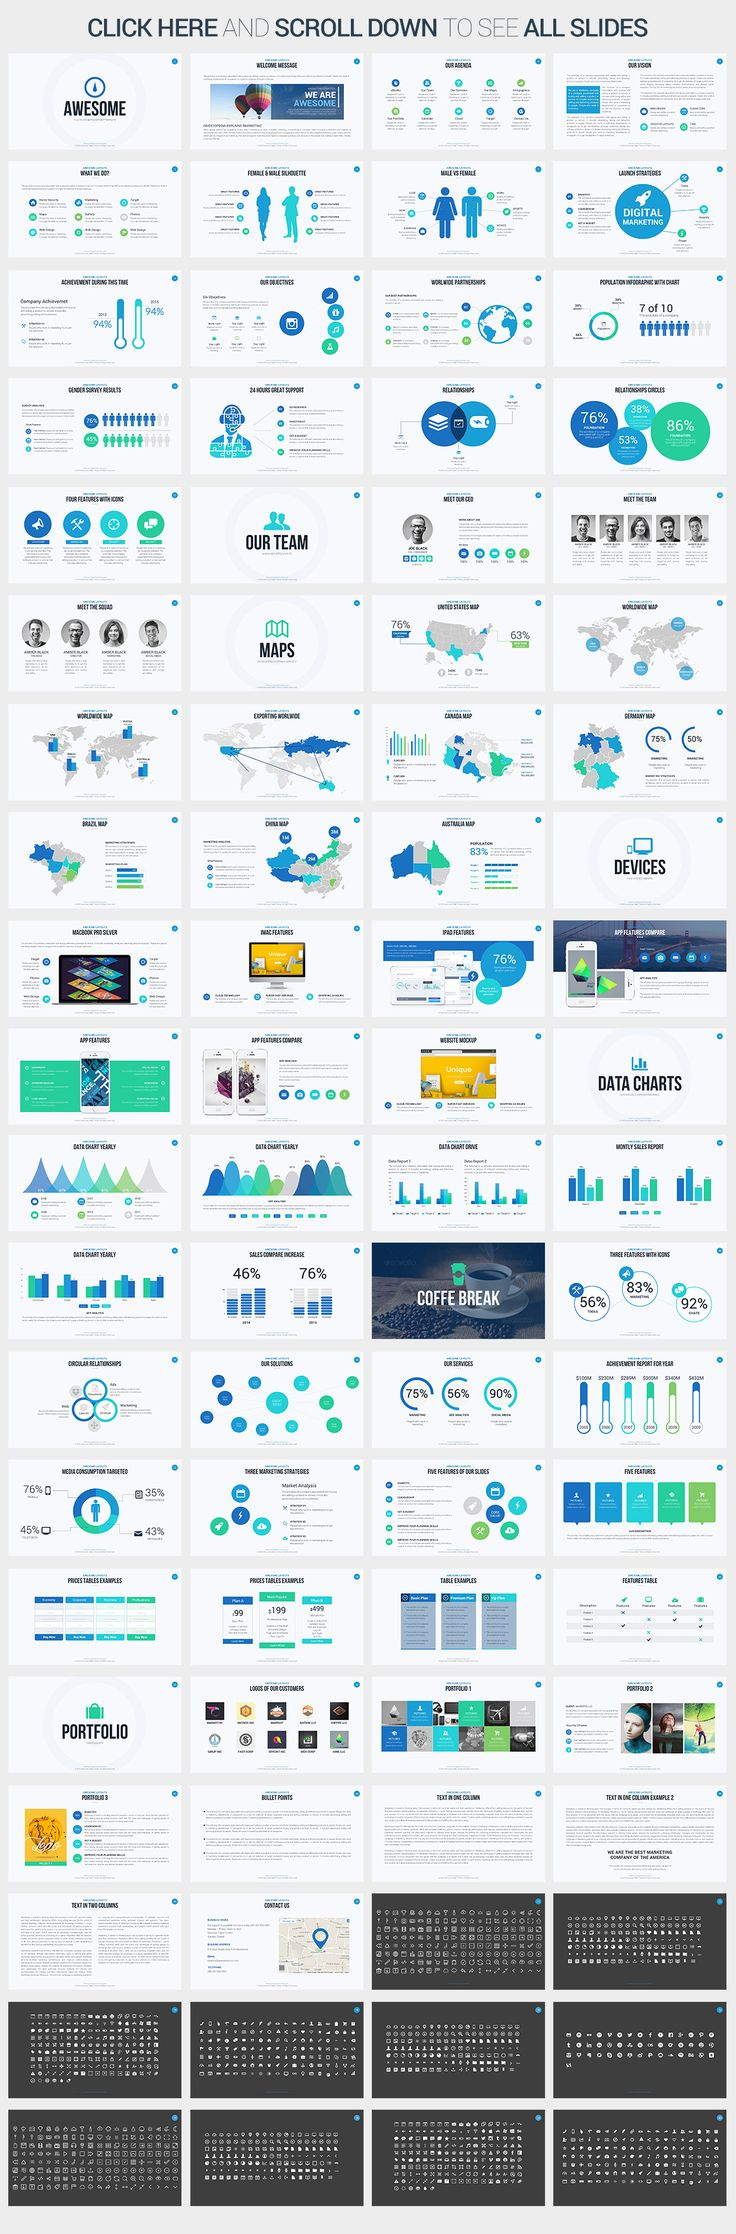 Best Best Powerpoint Templates Images On Pinterest Keynote - Awesome replace powerpoint template concept